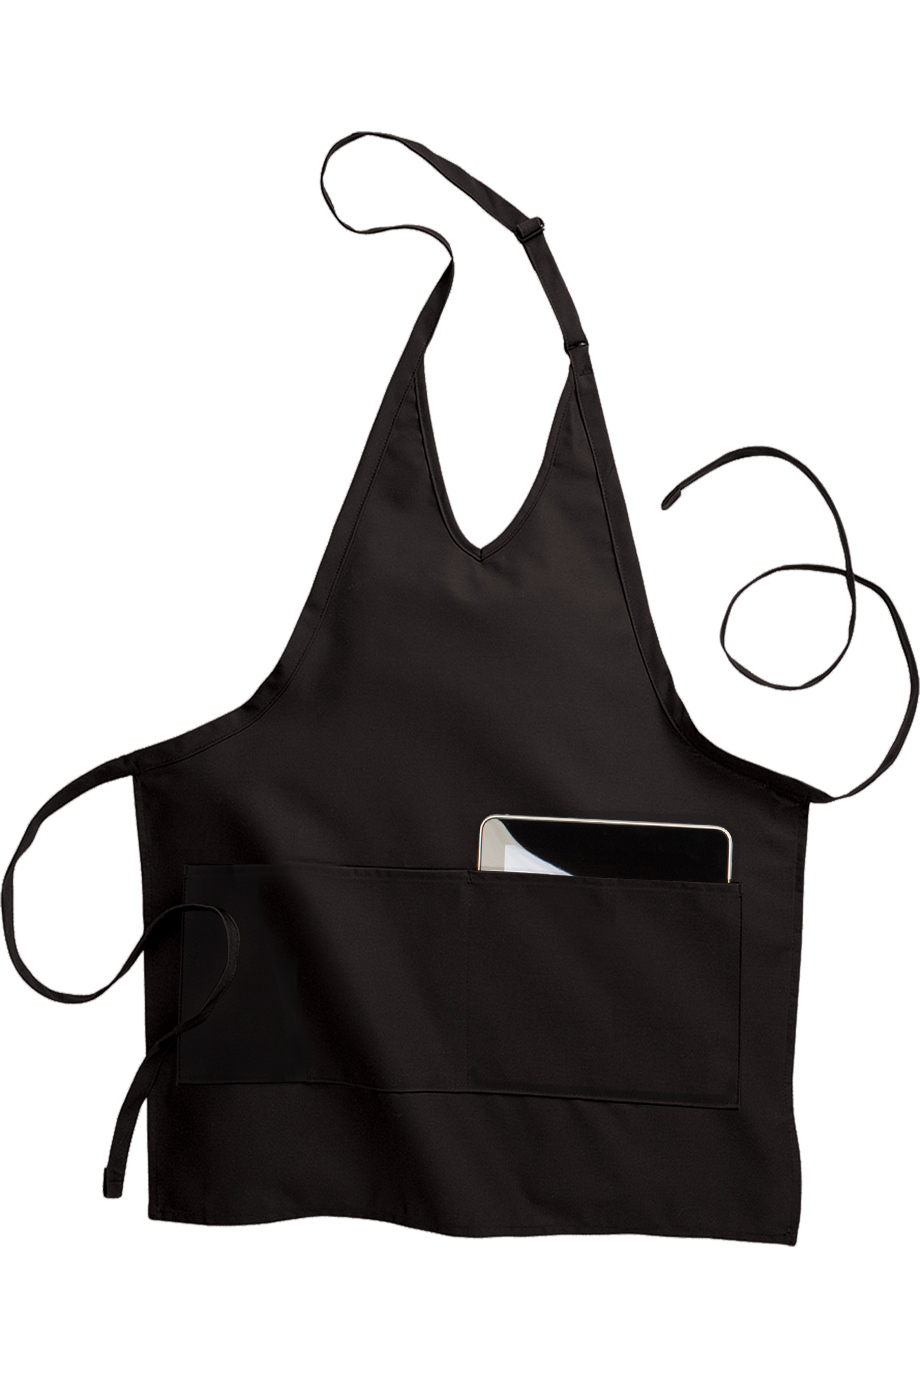 Edwards 2-Pocket V-Neck Bib Apron-Edwards